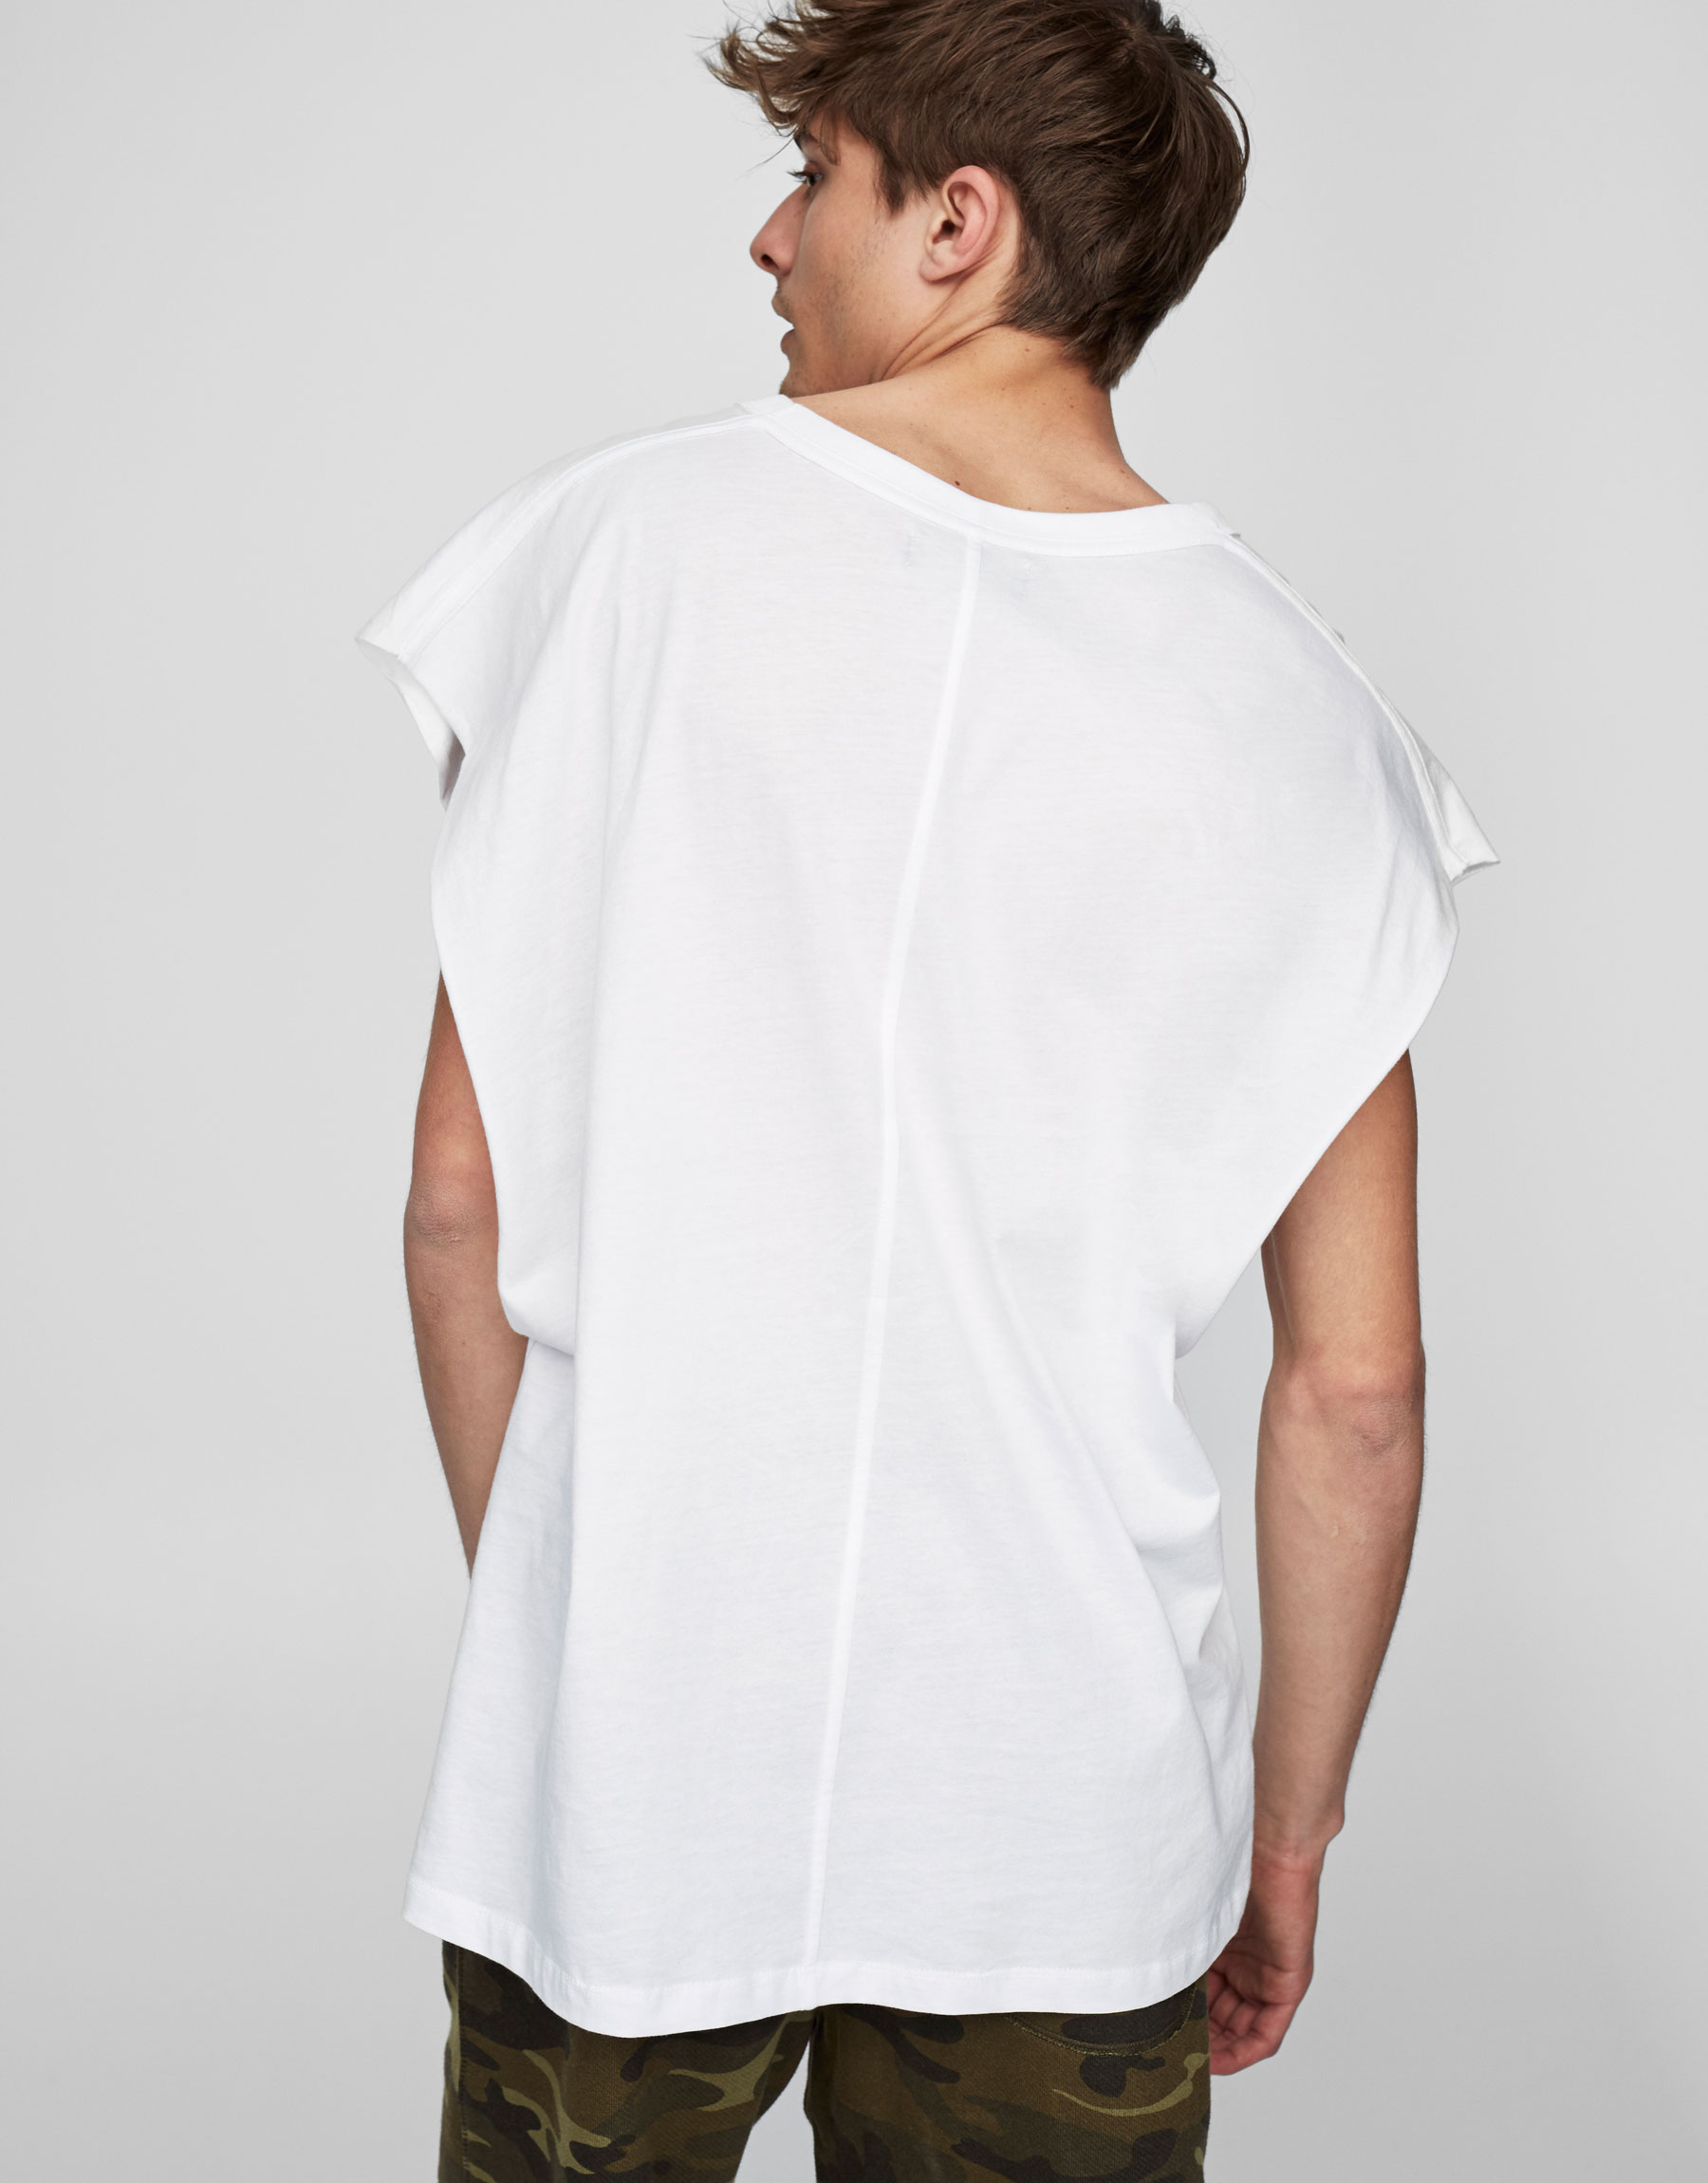 Sleeveless fashion T-shirt